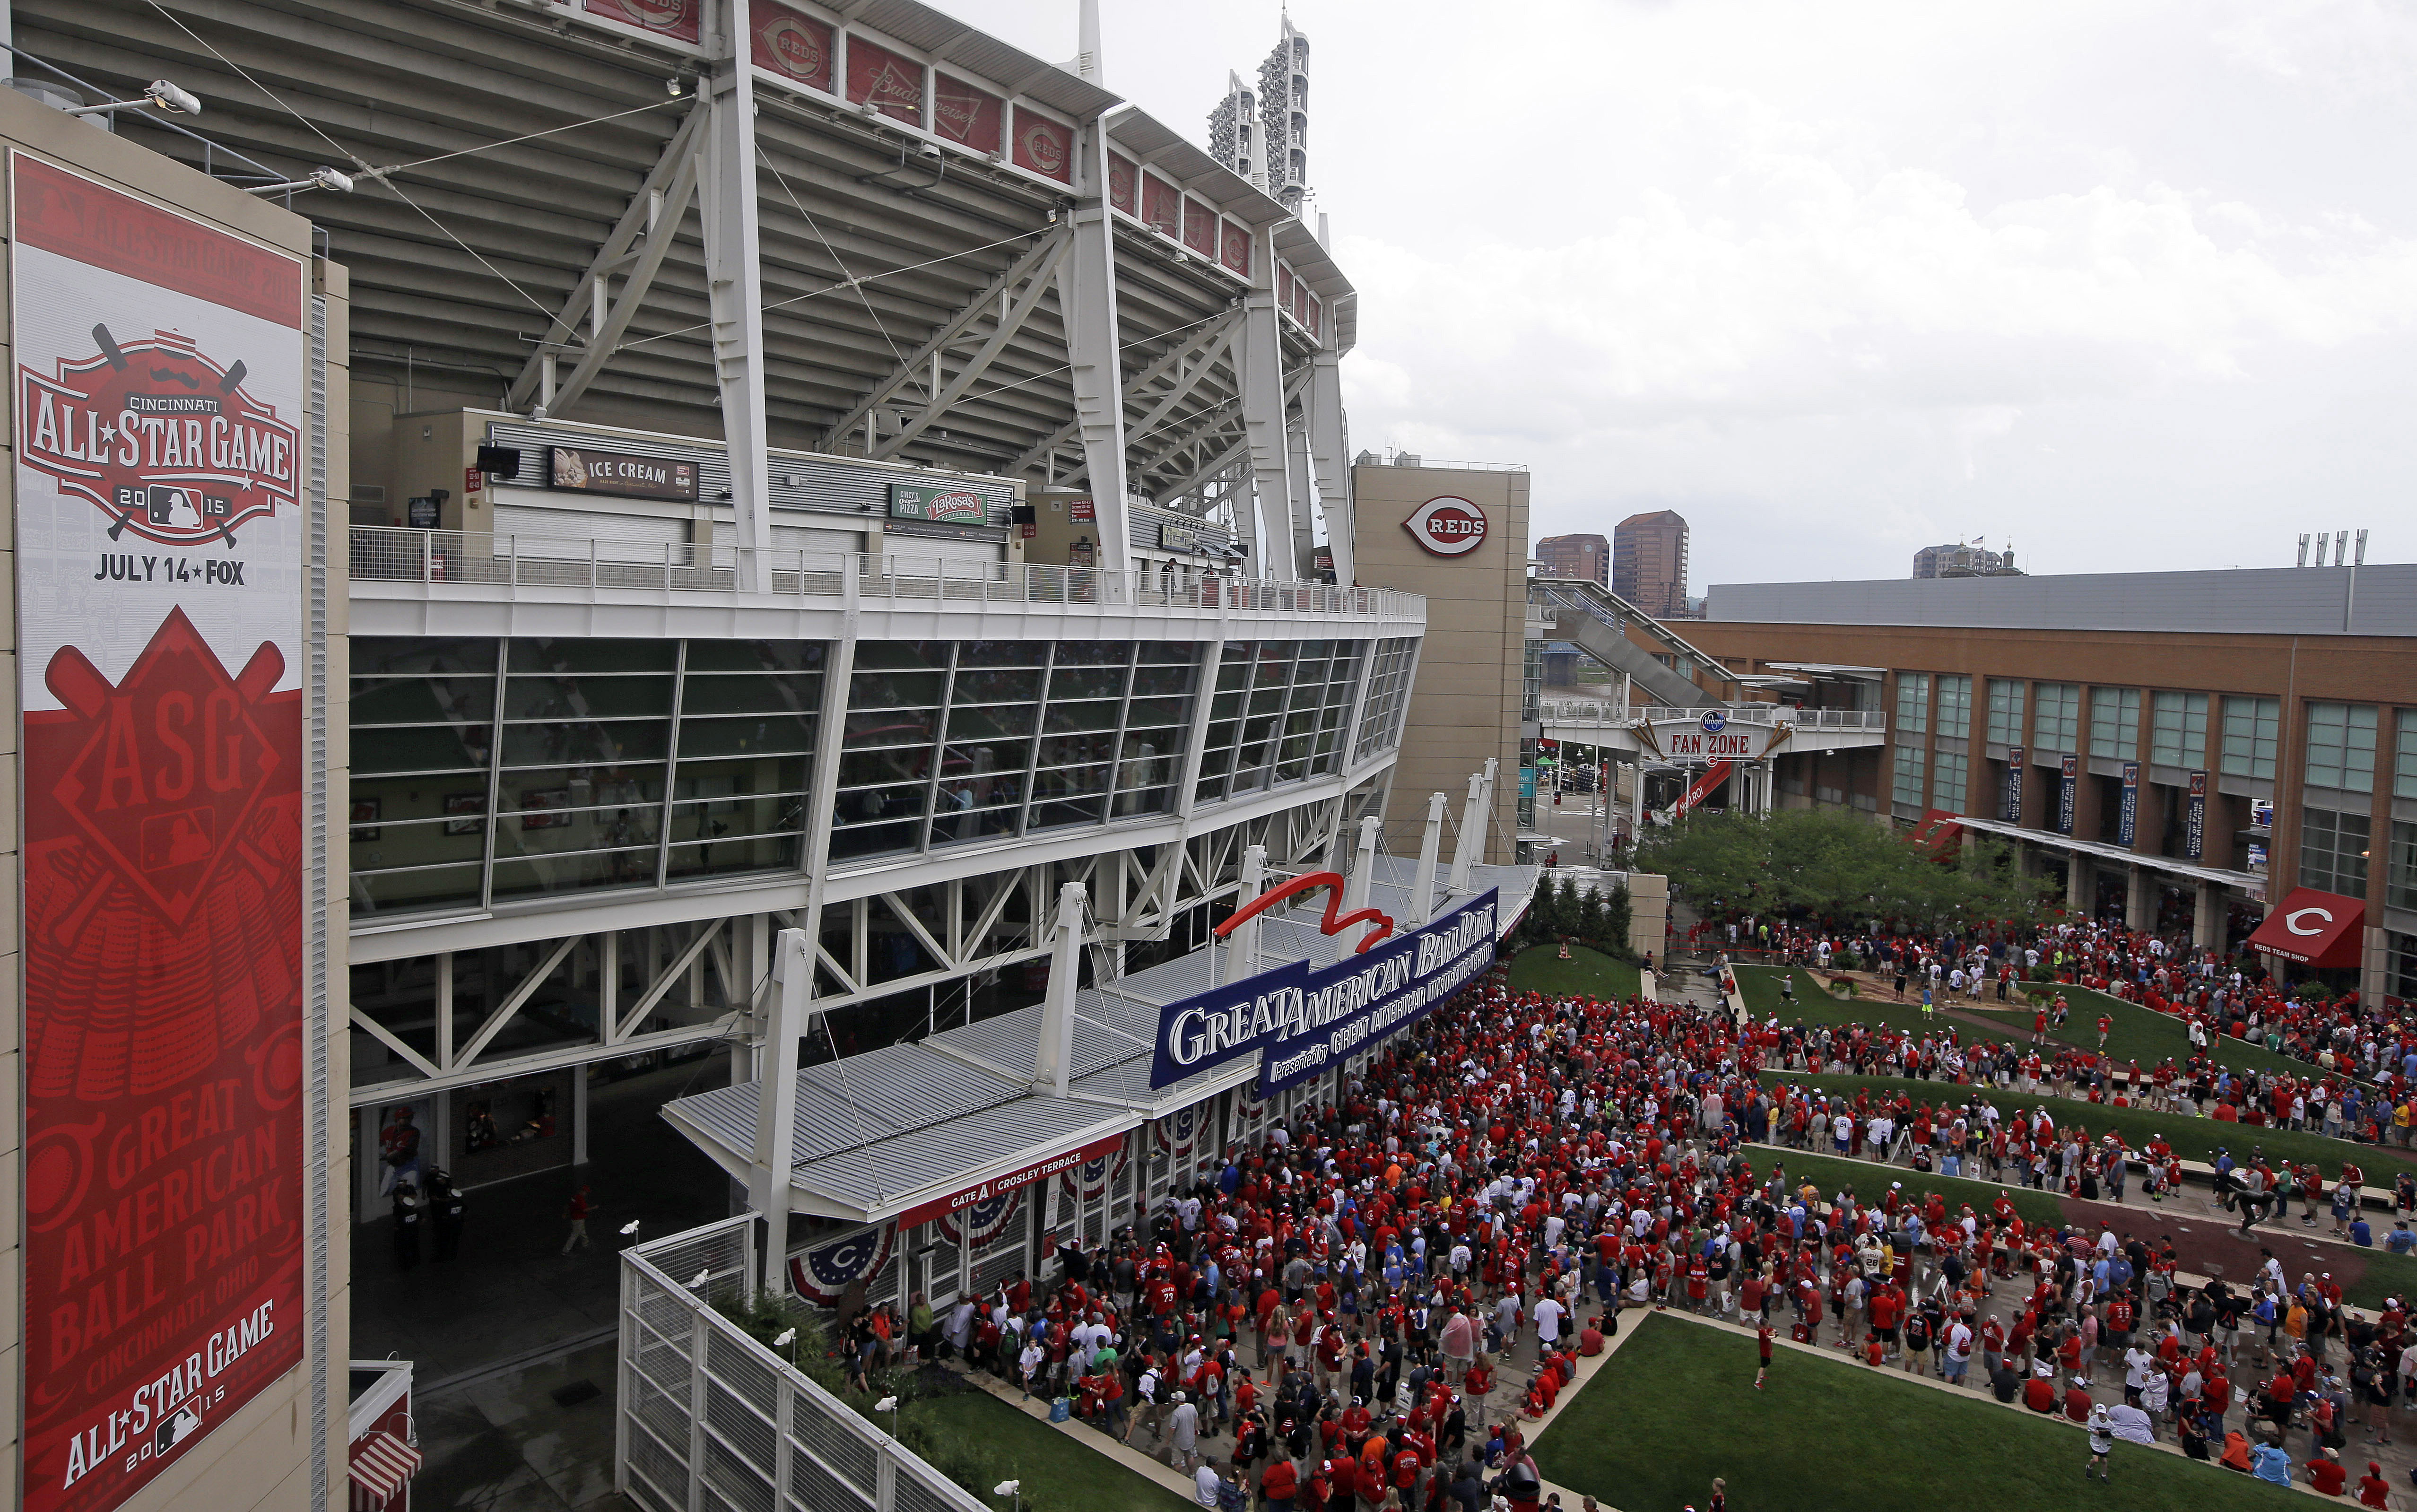 Fans wait to enter Great American Ball Park for the MLB All-Star baseball game, Tuesday, July 14, 2015, in Cincinnati. (AP Photo/John Minchillo)